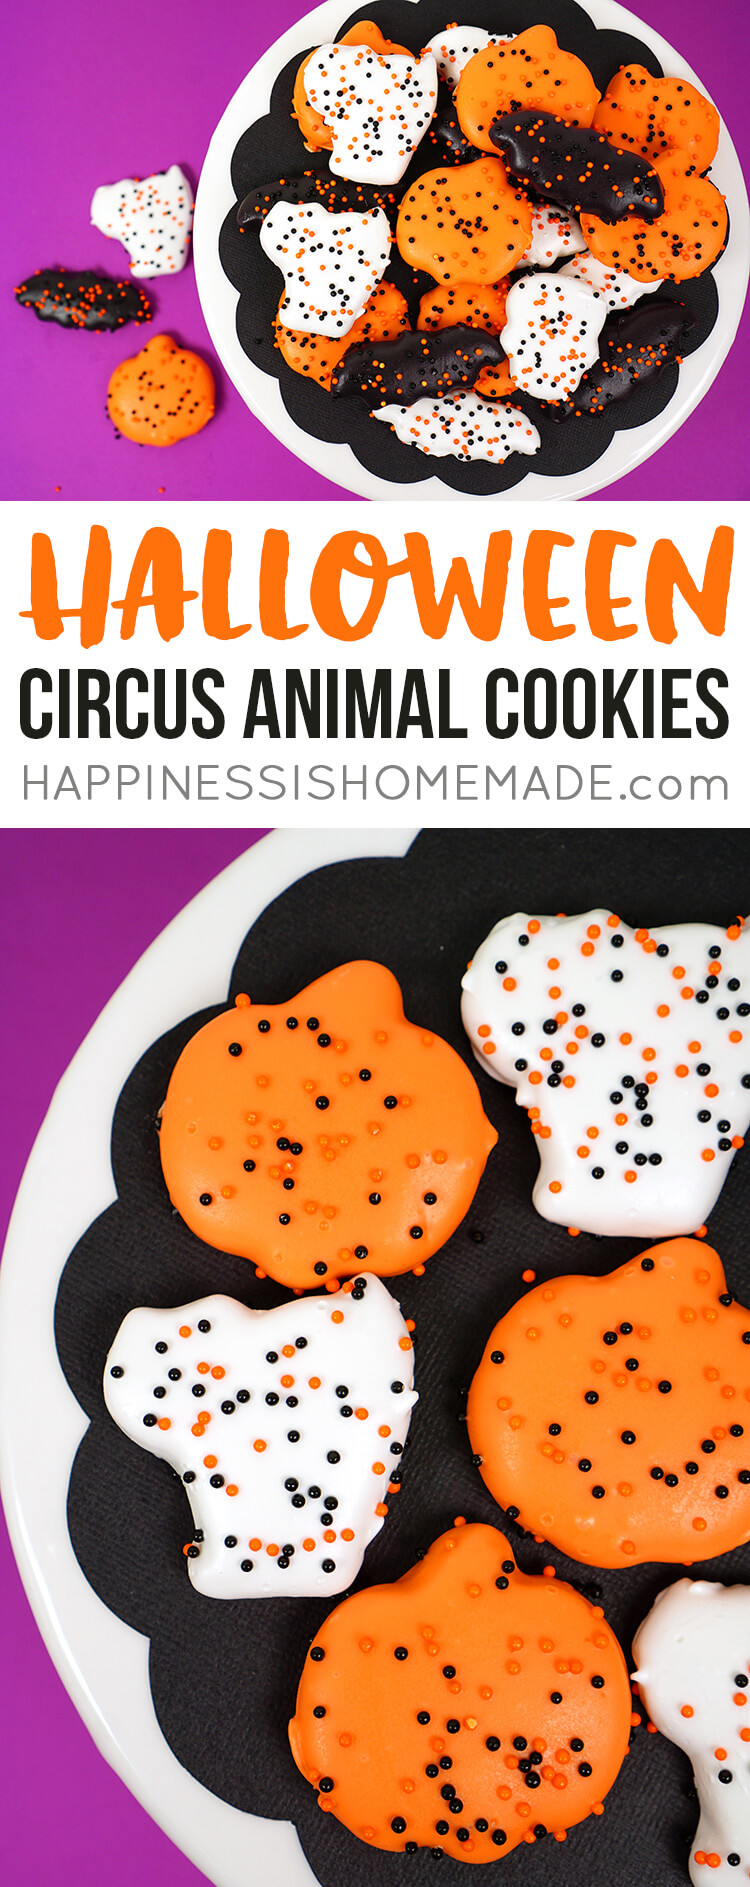 """These yummy Halloween """"Circus Animal"""" Cookies are a delicious Halloween party treat or classroom treat idea! I love these easy-to-make and super cute Halloween cookies - a perfect homemade addition to your """"You've Been Booed"""" basket!"""